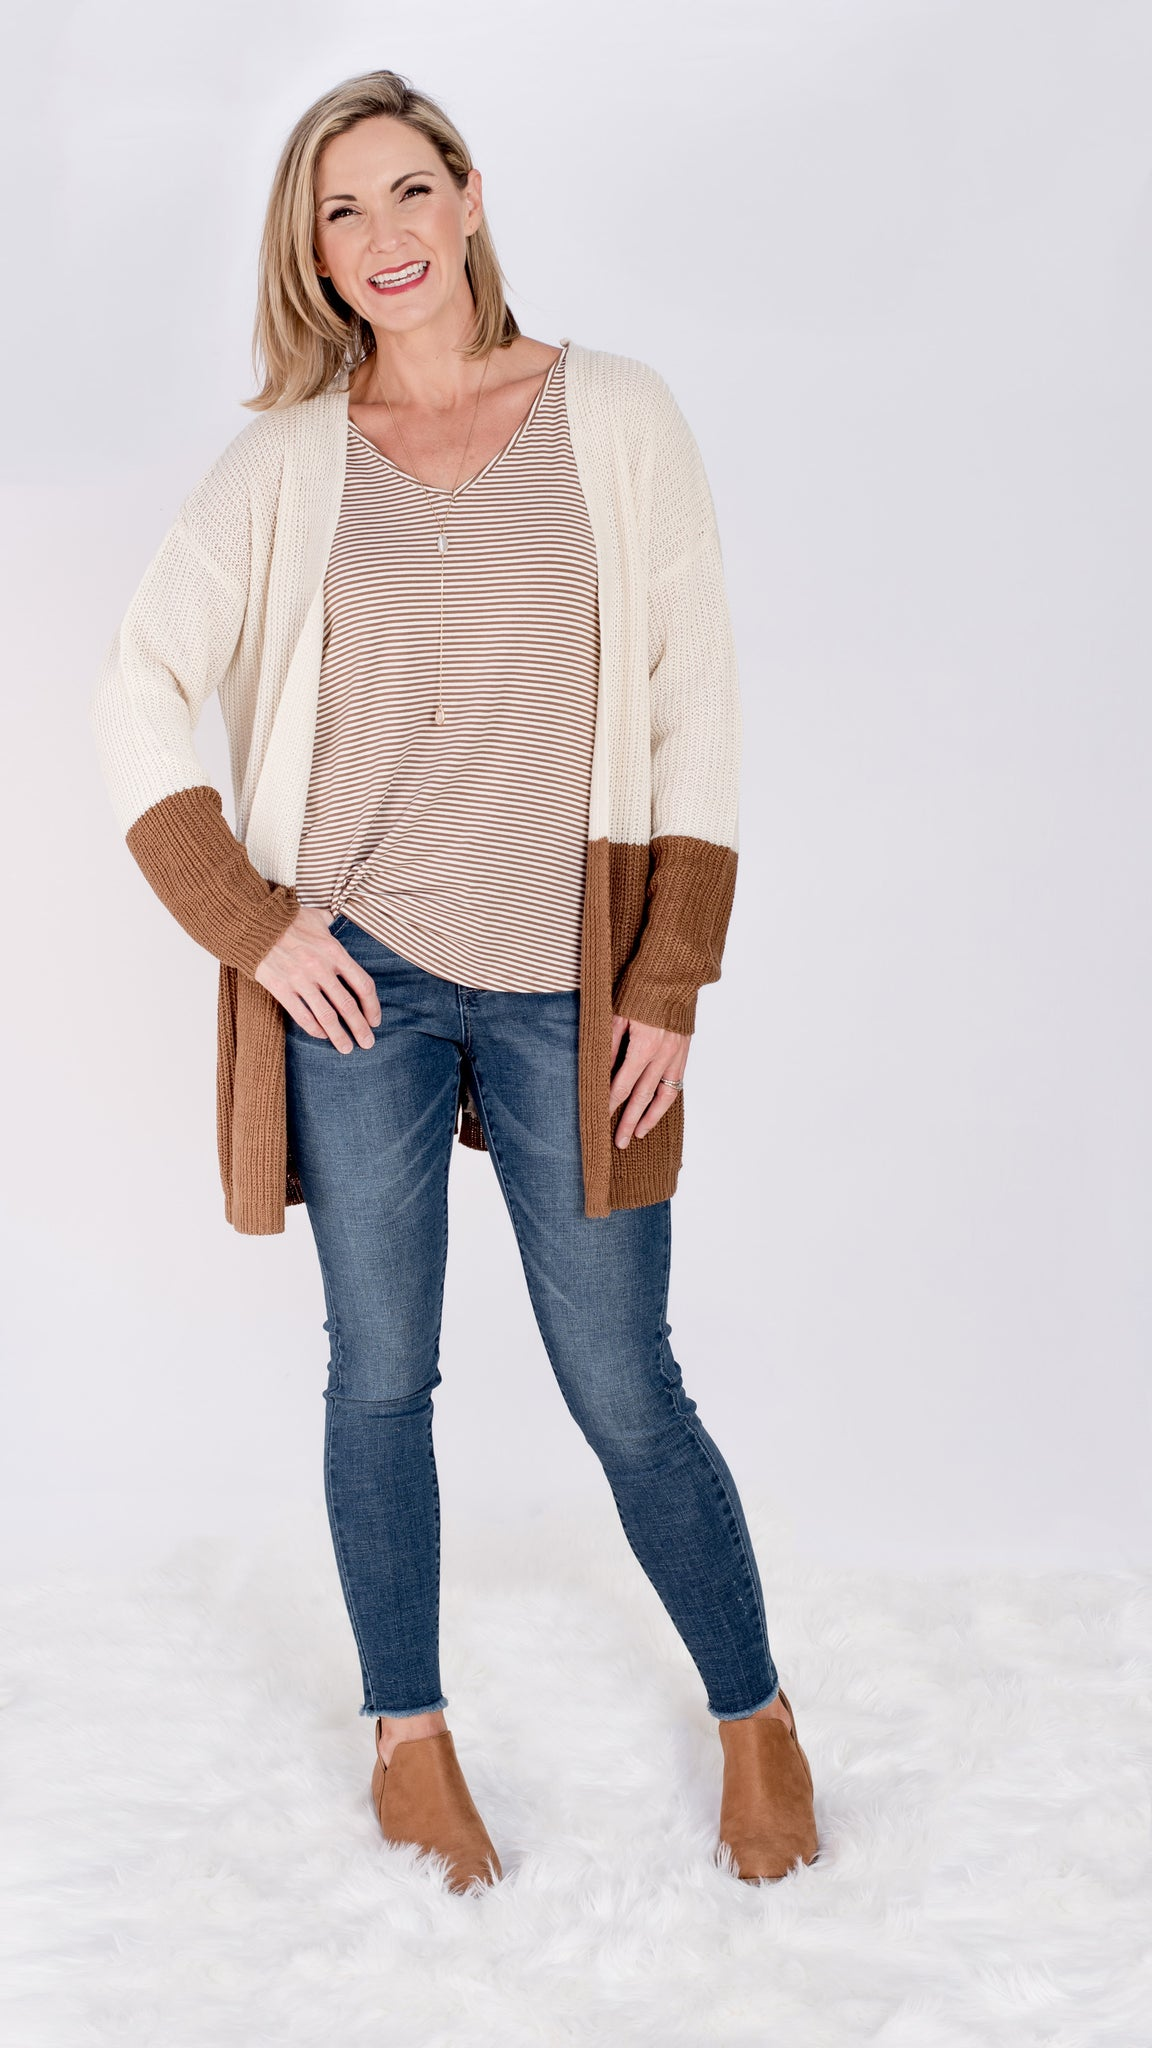 Falling Leaves Braided Back Color Block Cardigan